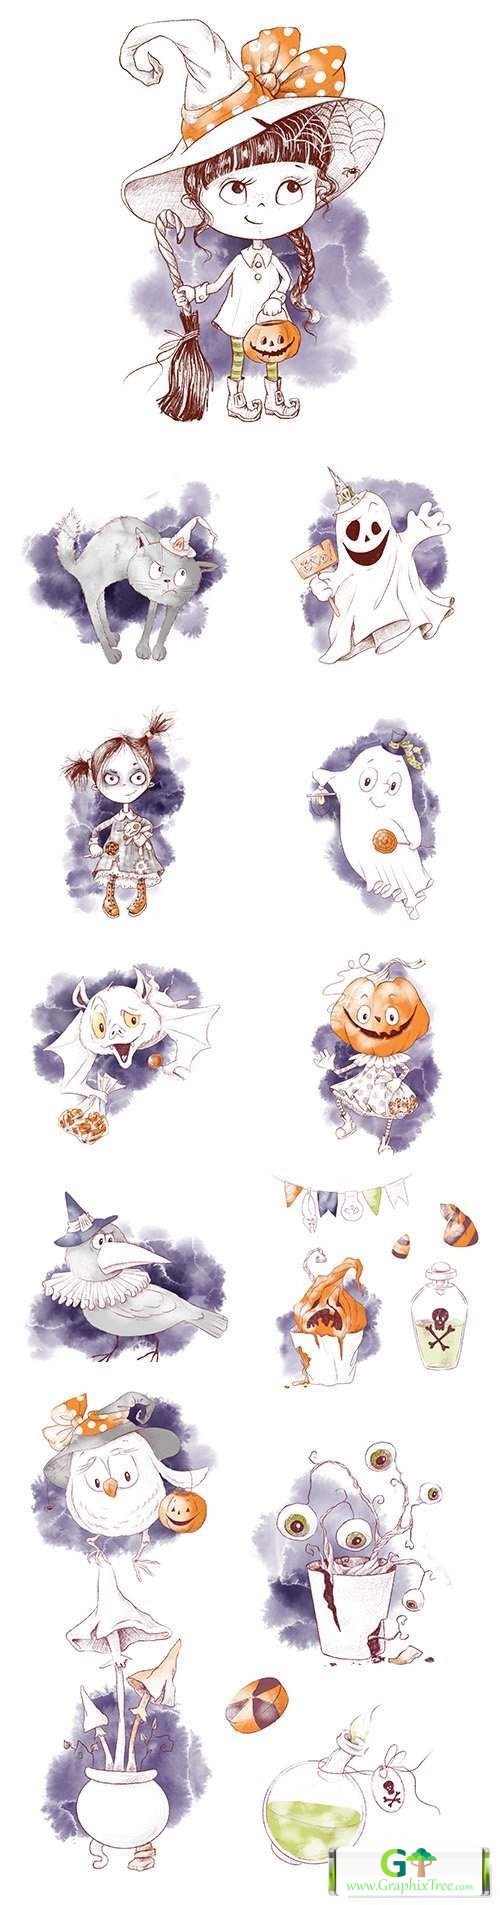 Halloween cute watercolor illustrations with cartoon characters